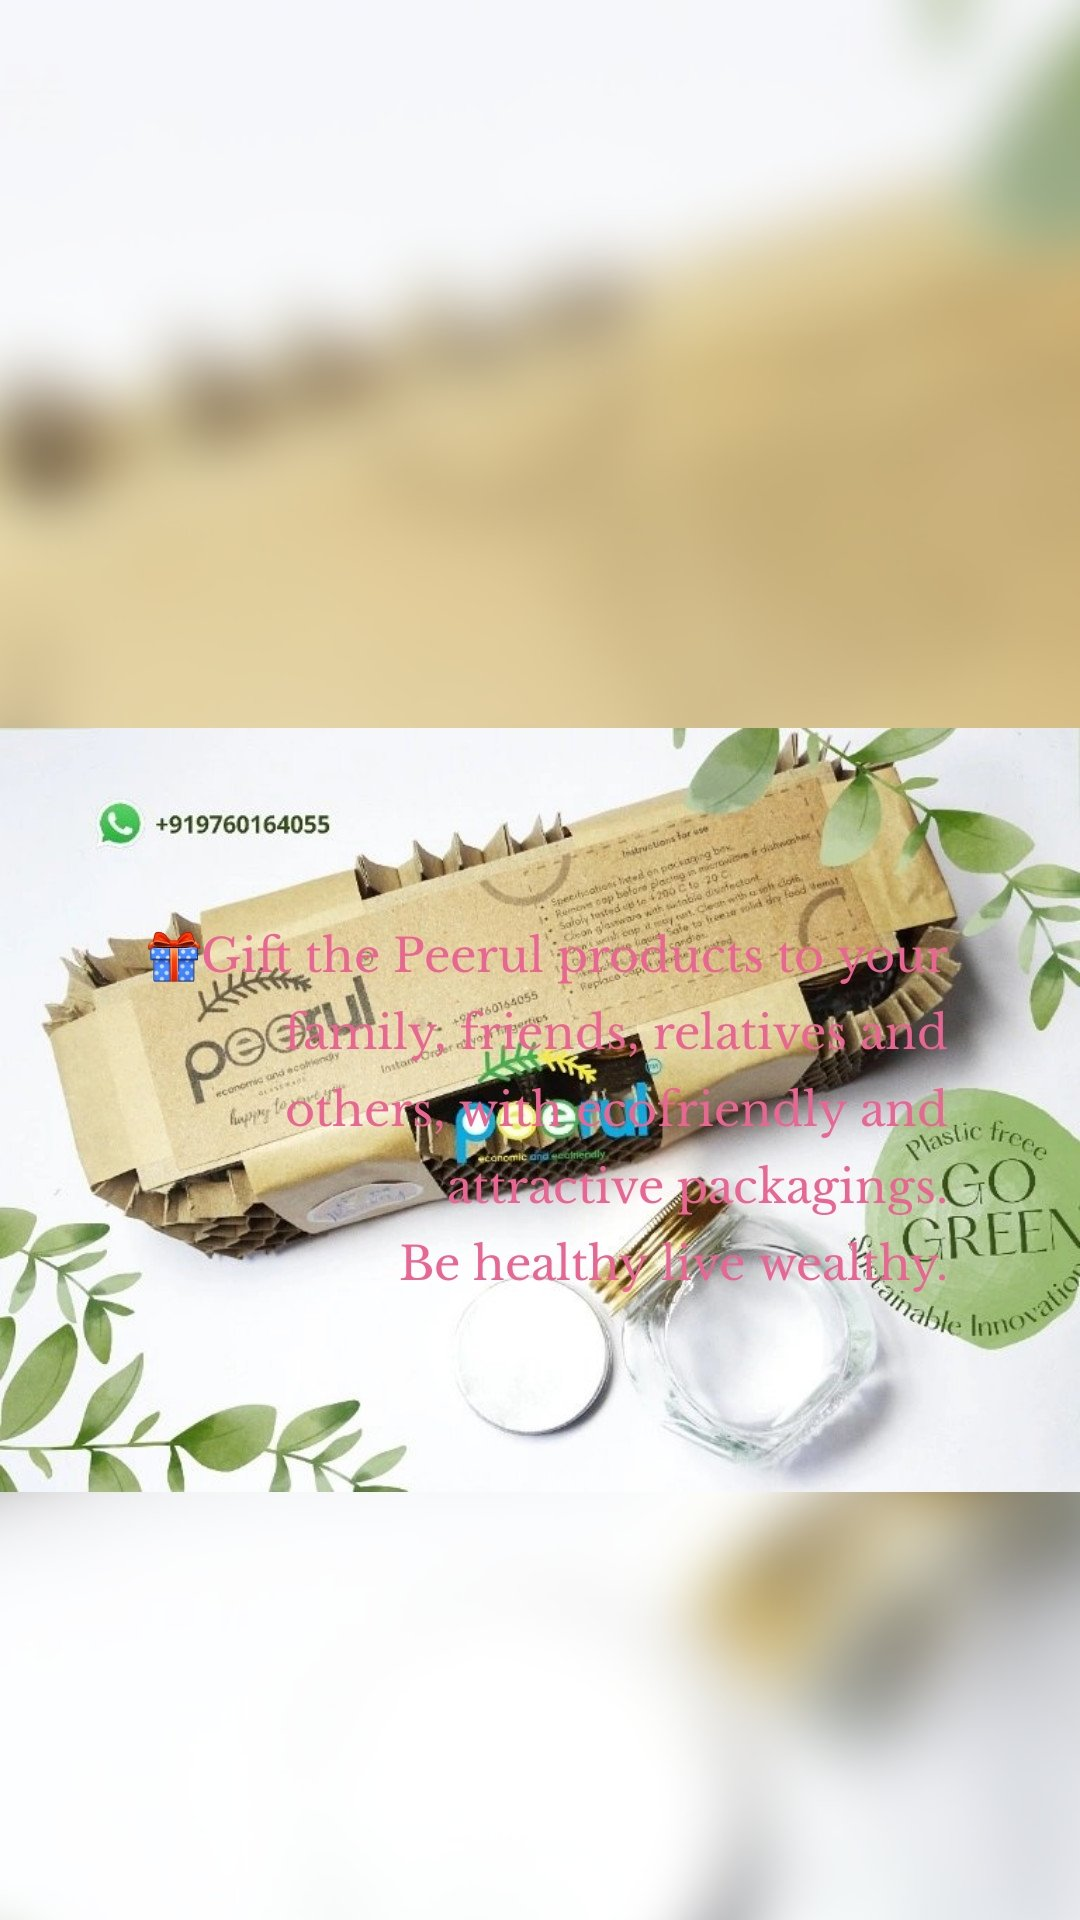 🎁Gift the Peerul products to your family, friends, relatives and others, with ecofriendly and attractive packagings. Be healthy live wealthy.